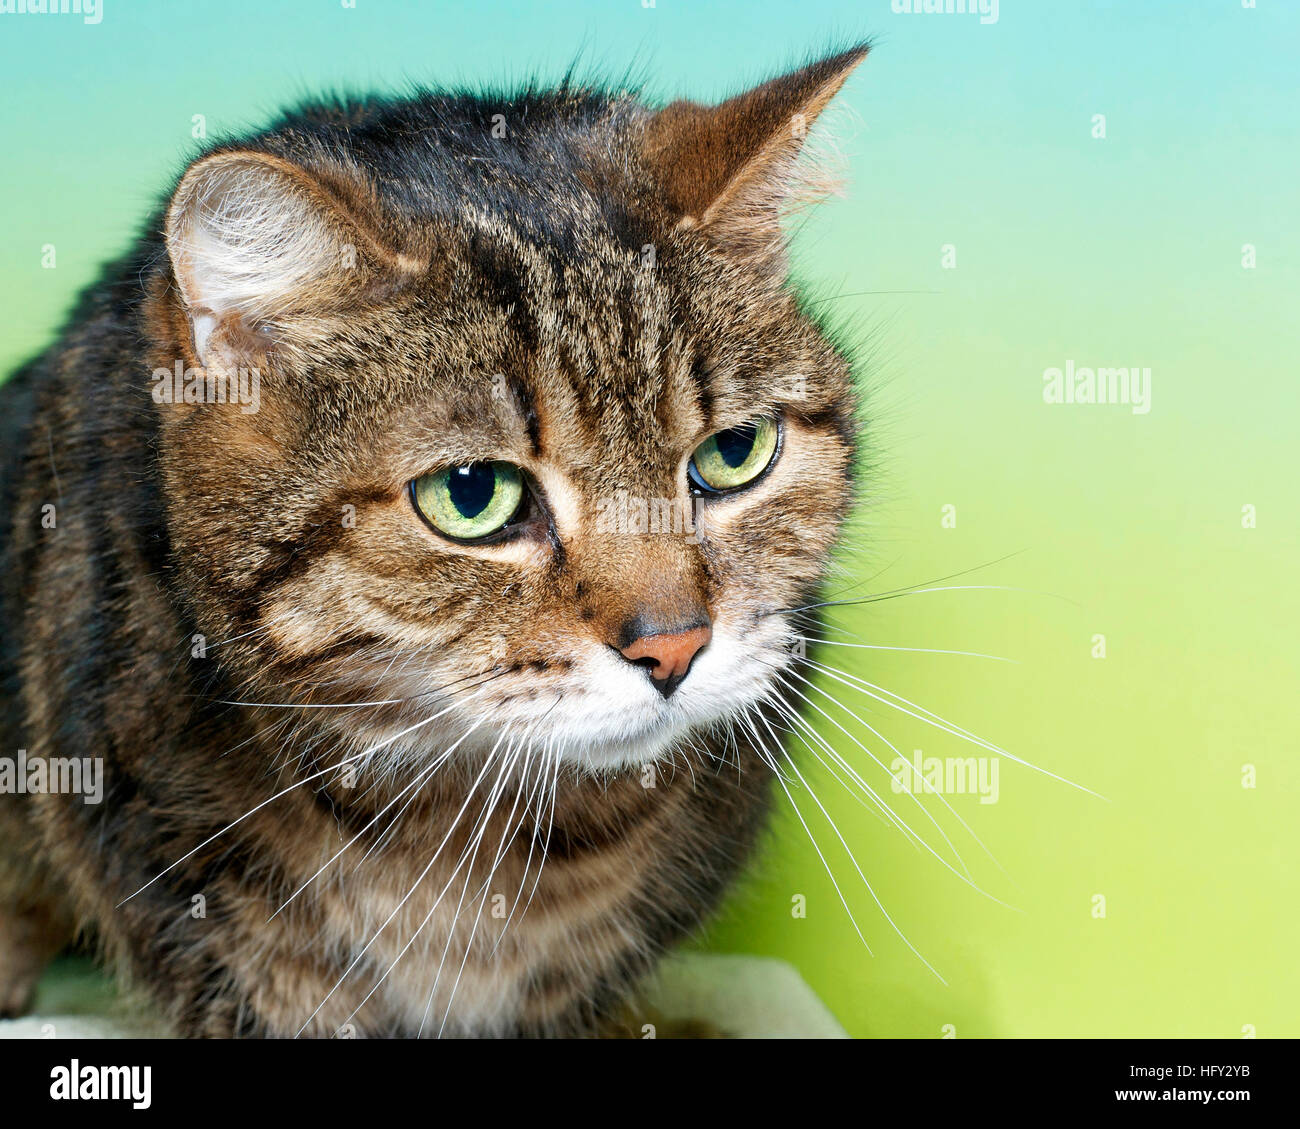 Portrait Of A Brown Black And White Tabby Cat With Green Eyes Looking Stock Photo Alamy